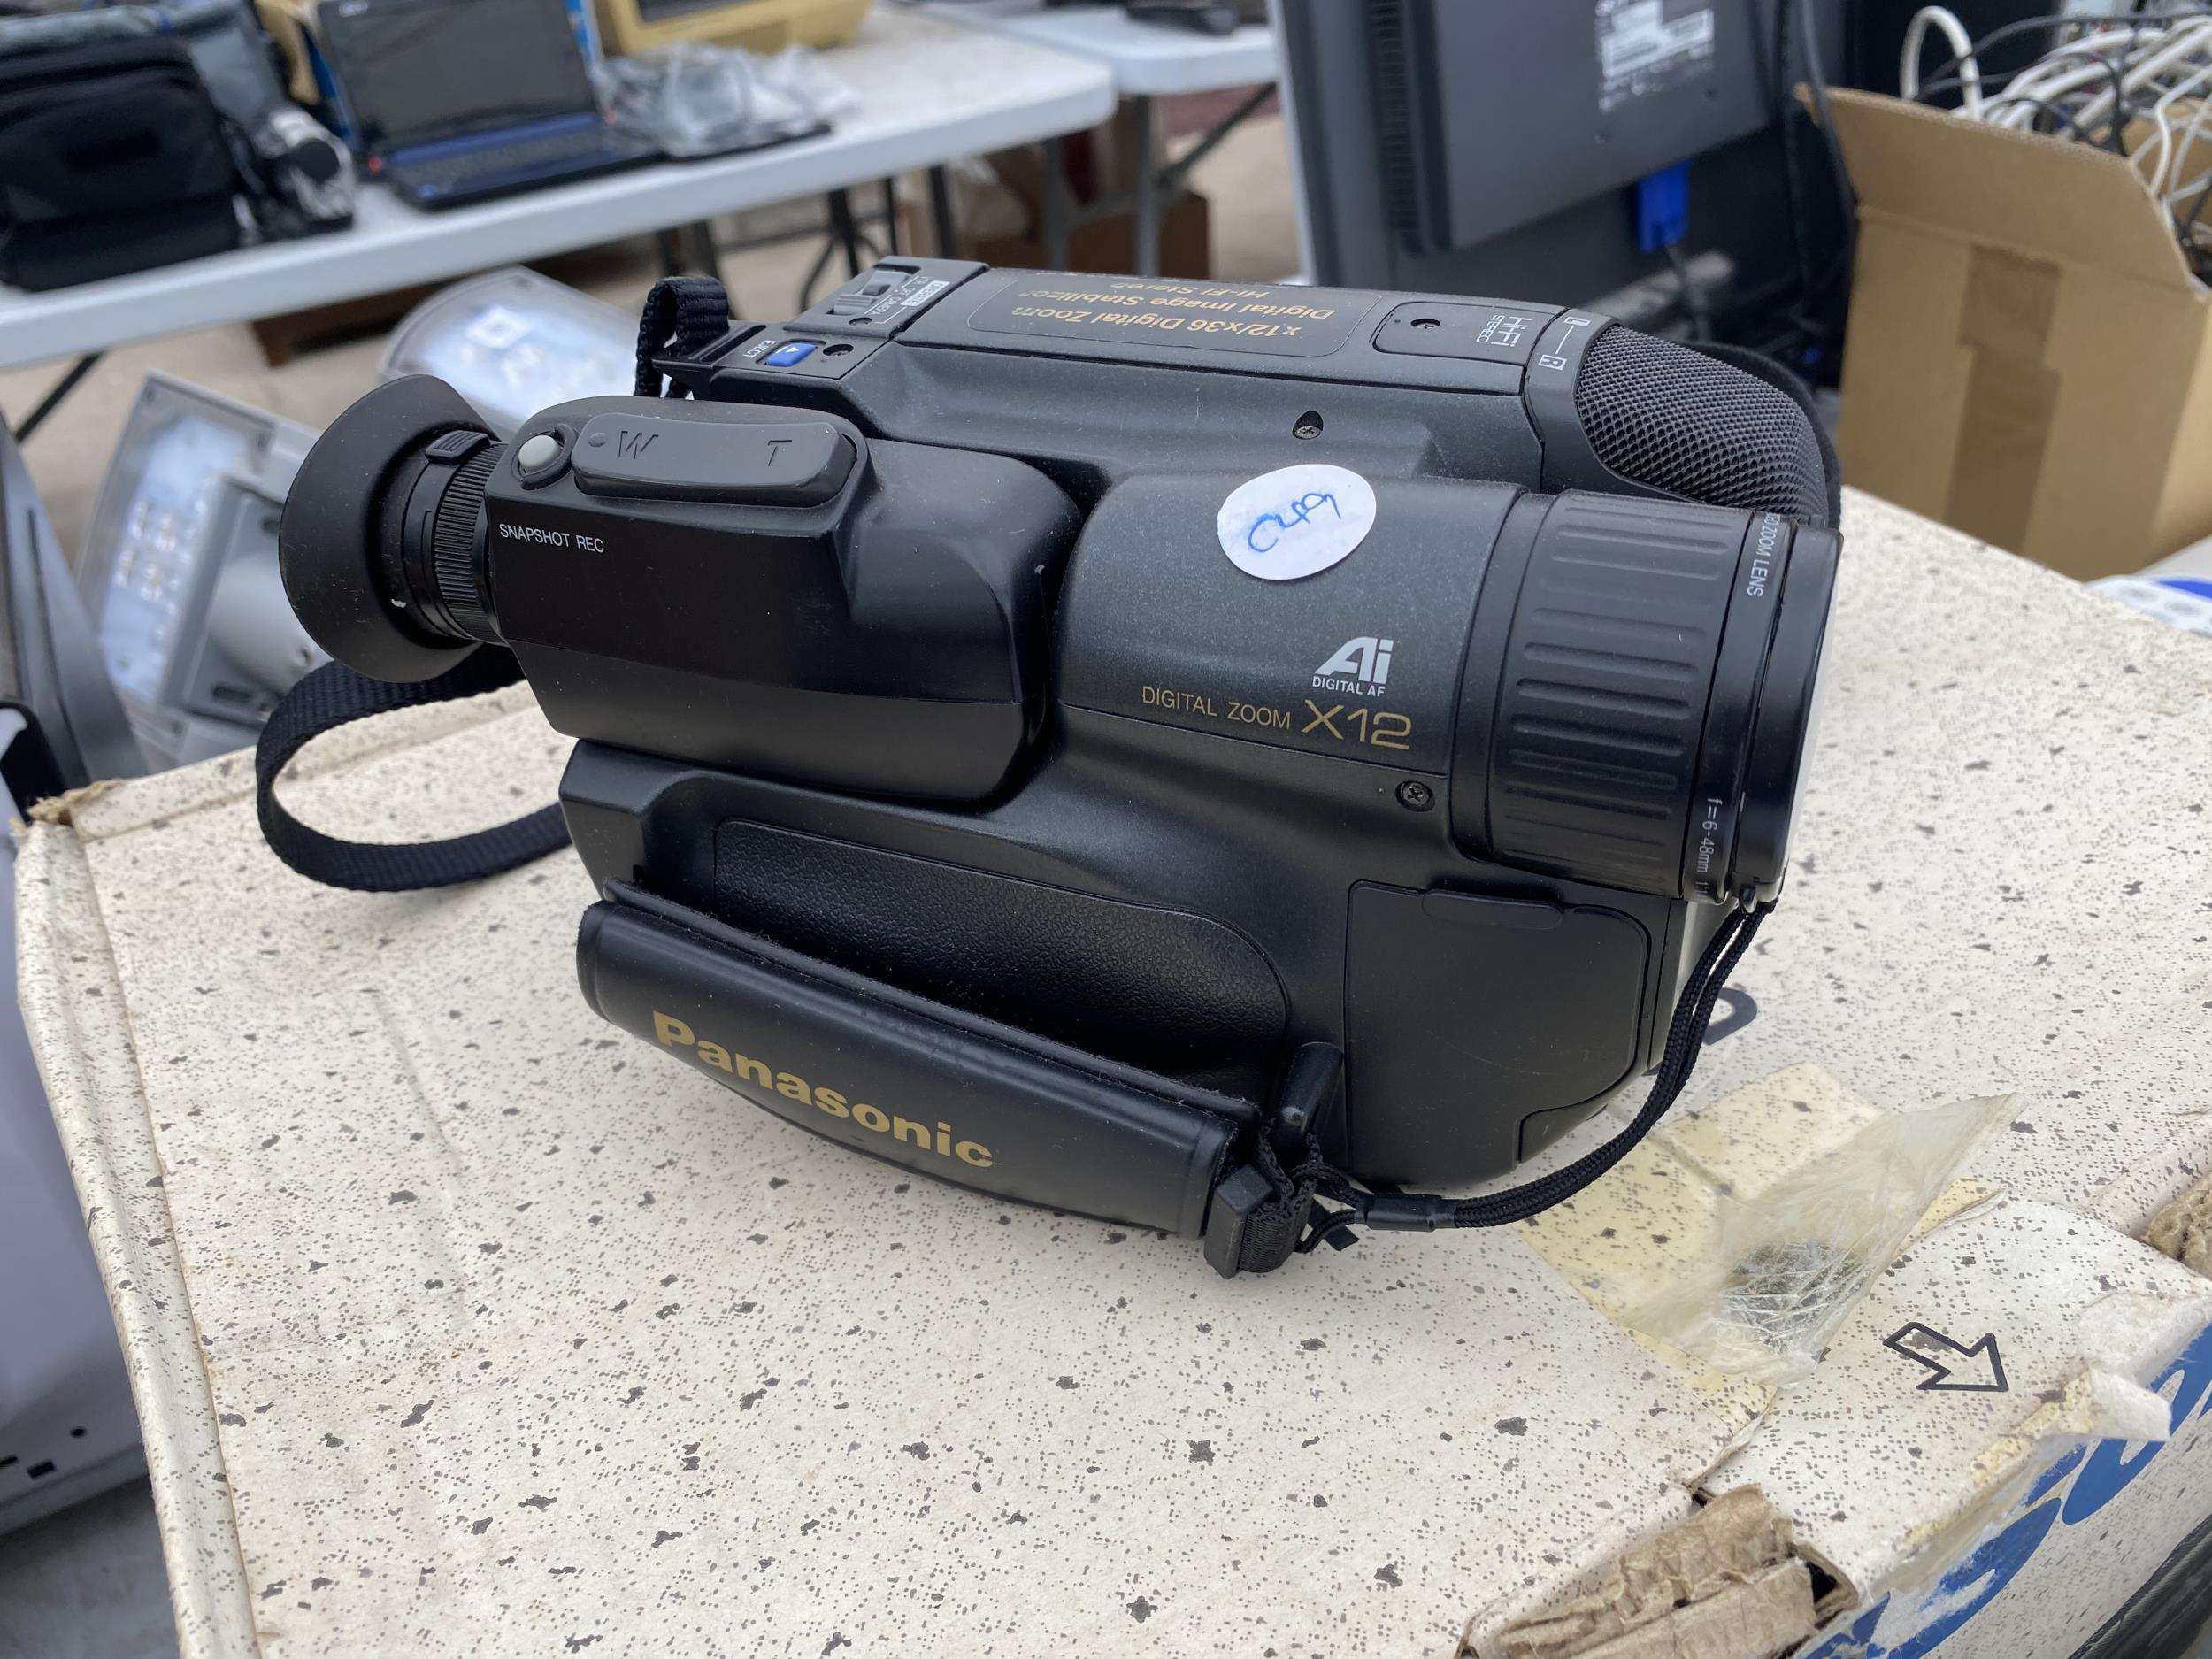 A PANASONIC CAMCORDER AND AN ELECTRIC SHOWER UNIT - Image 2 of 4